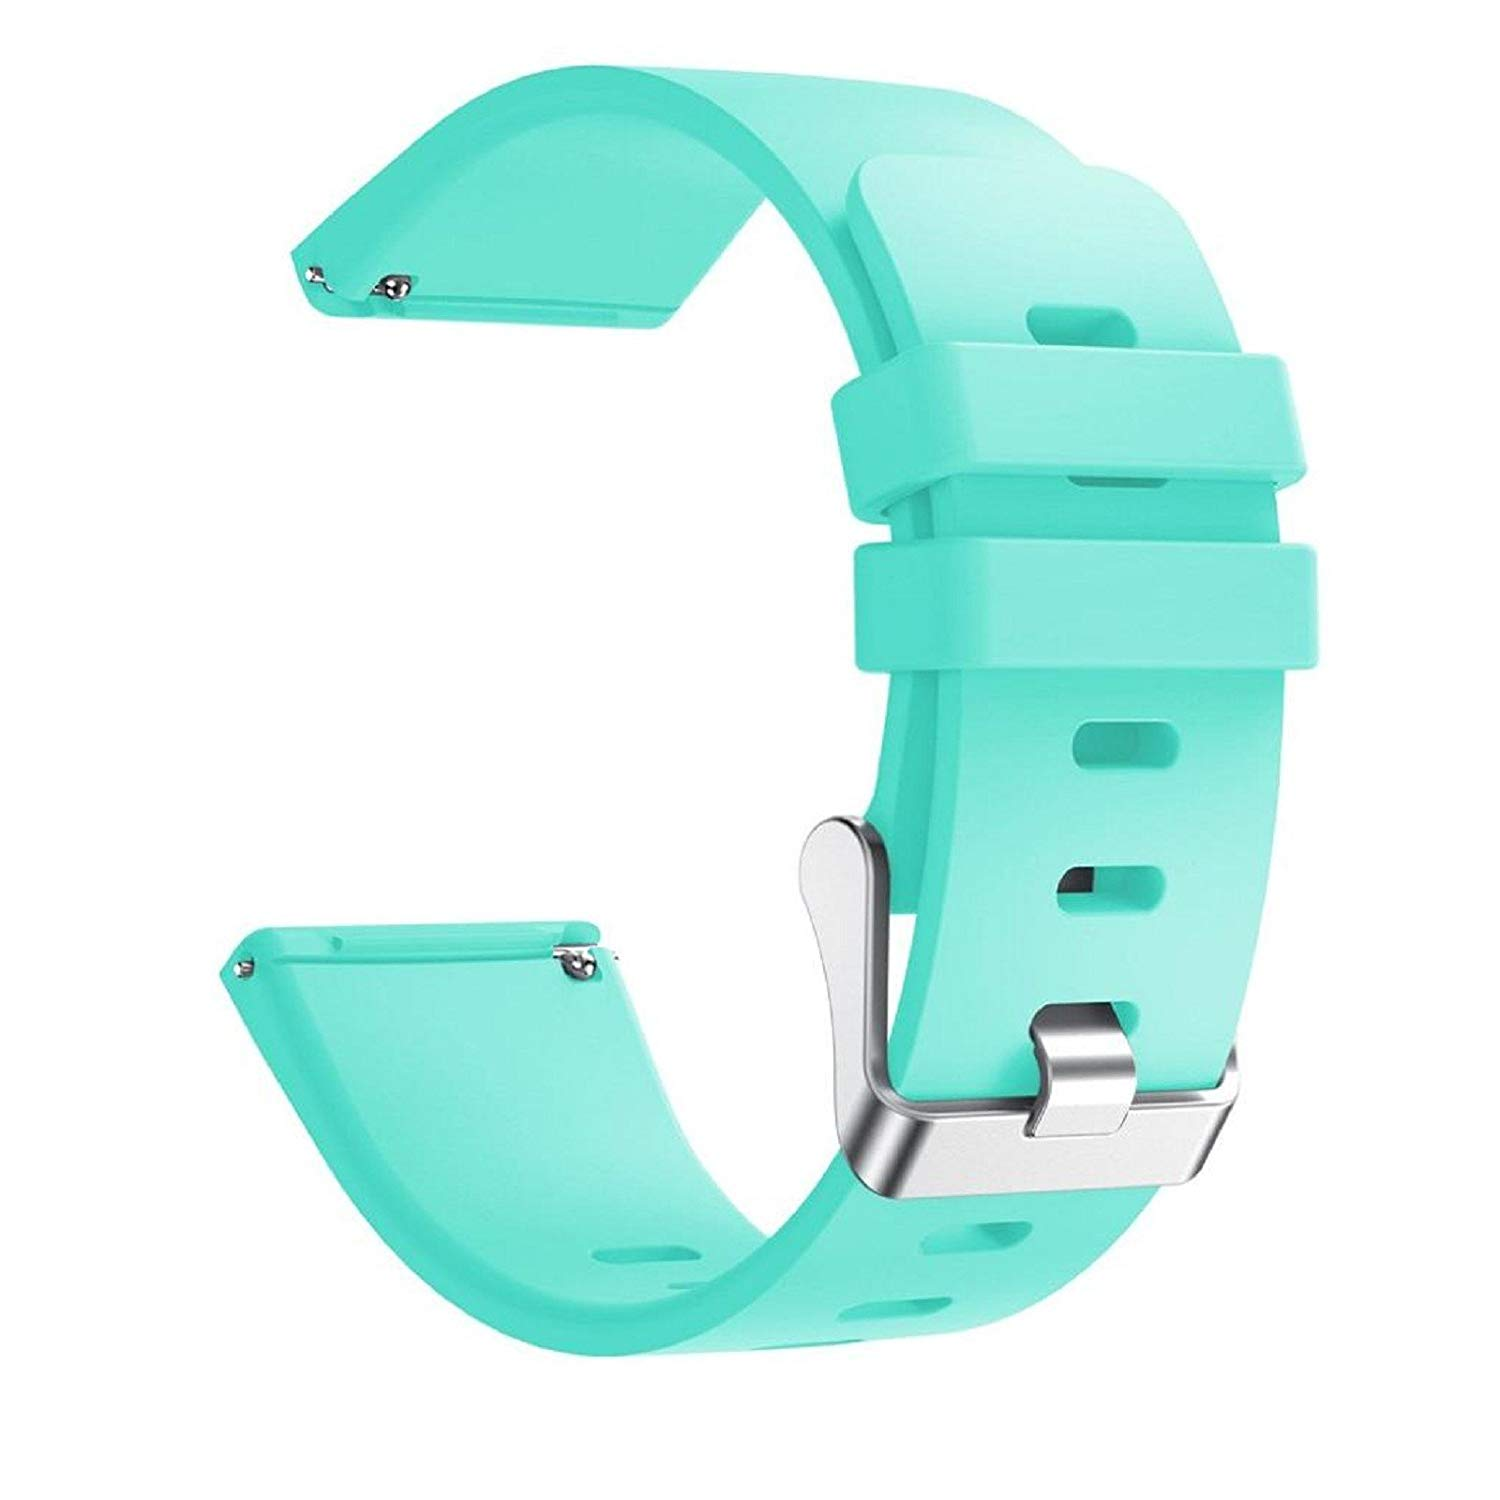 "Owill Soft Silicone Replacement Sports Classic Band Strap For Fitbit Versa Smart Watch, Fits 5.90""-8.27"" Wrist (Mint Green)"